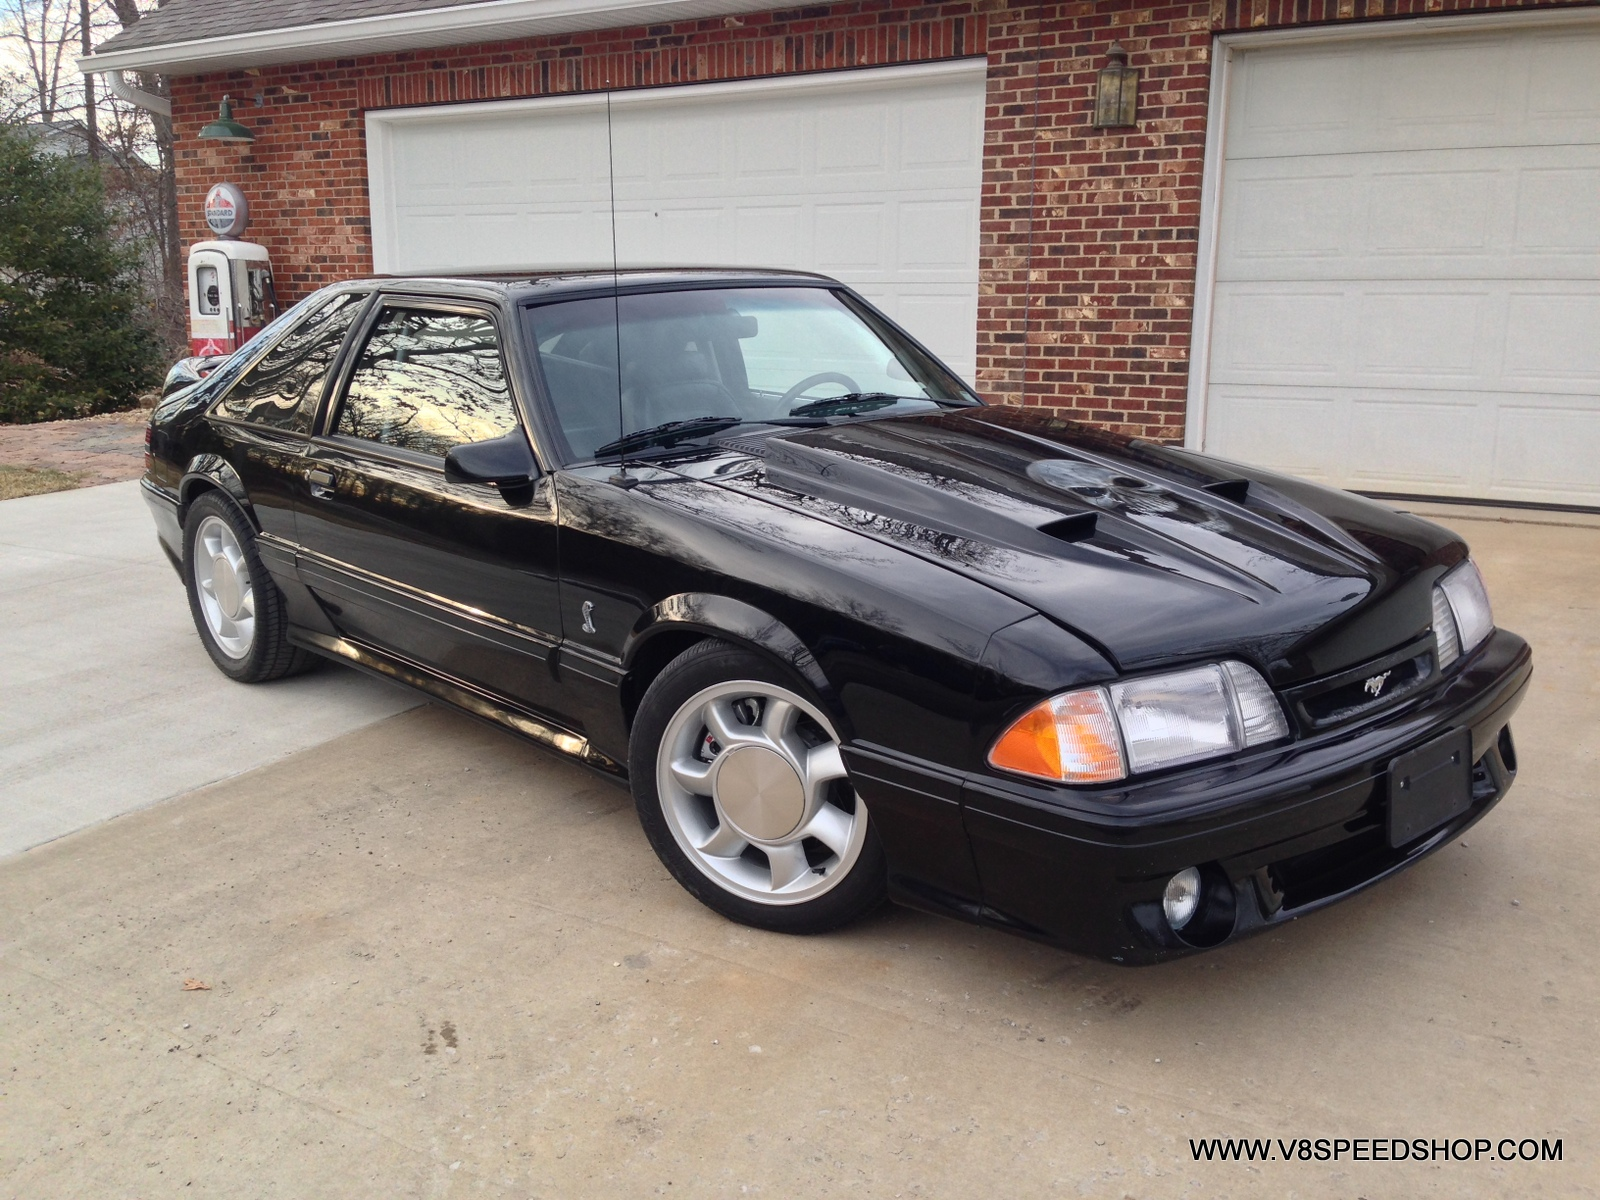 1993 Ford Mustang Cobra Turbo Completion in V8 Speed & Resto Shop